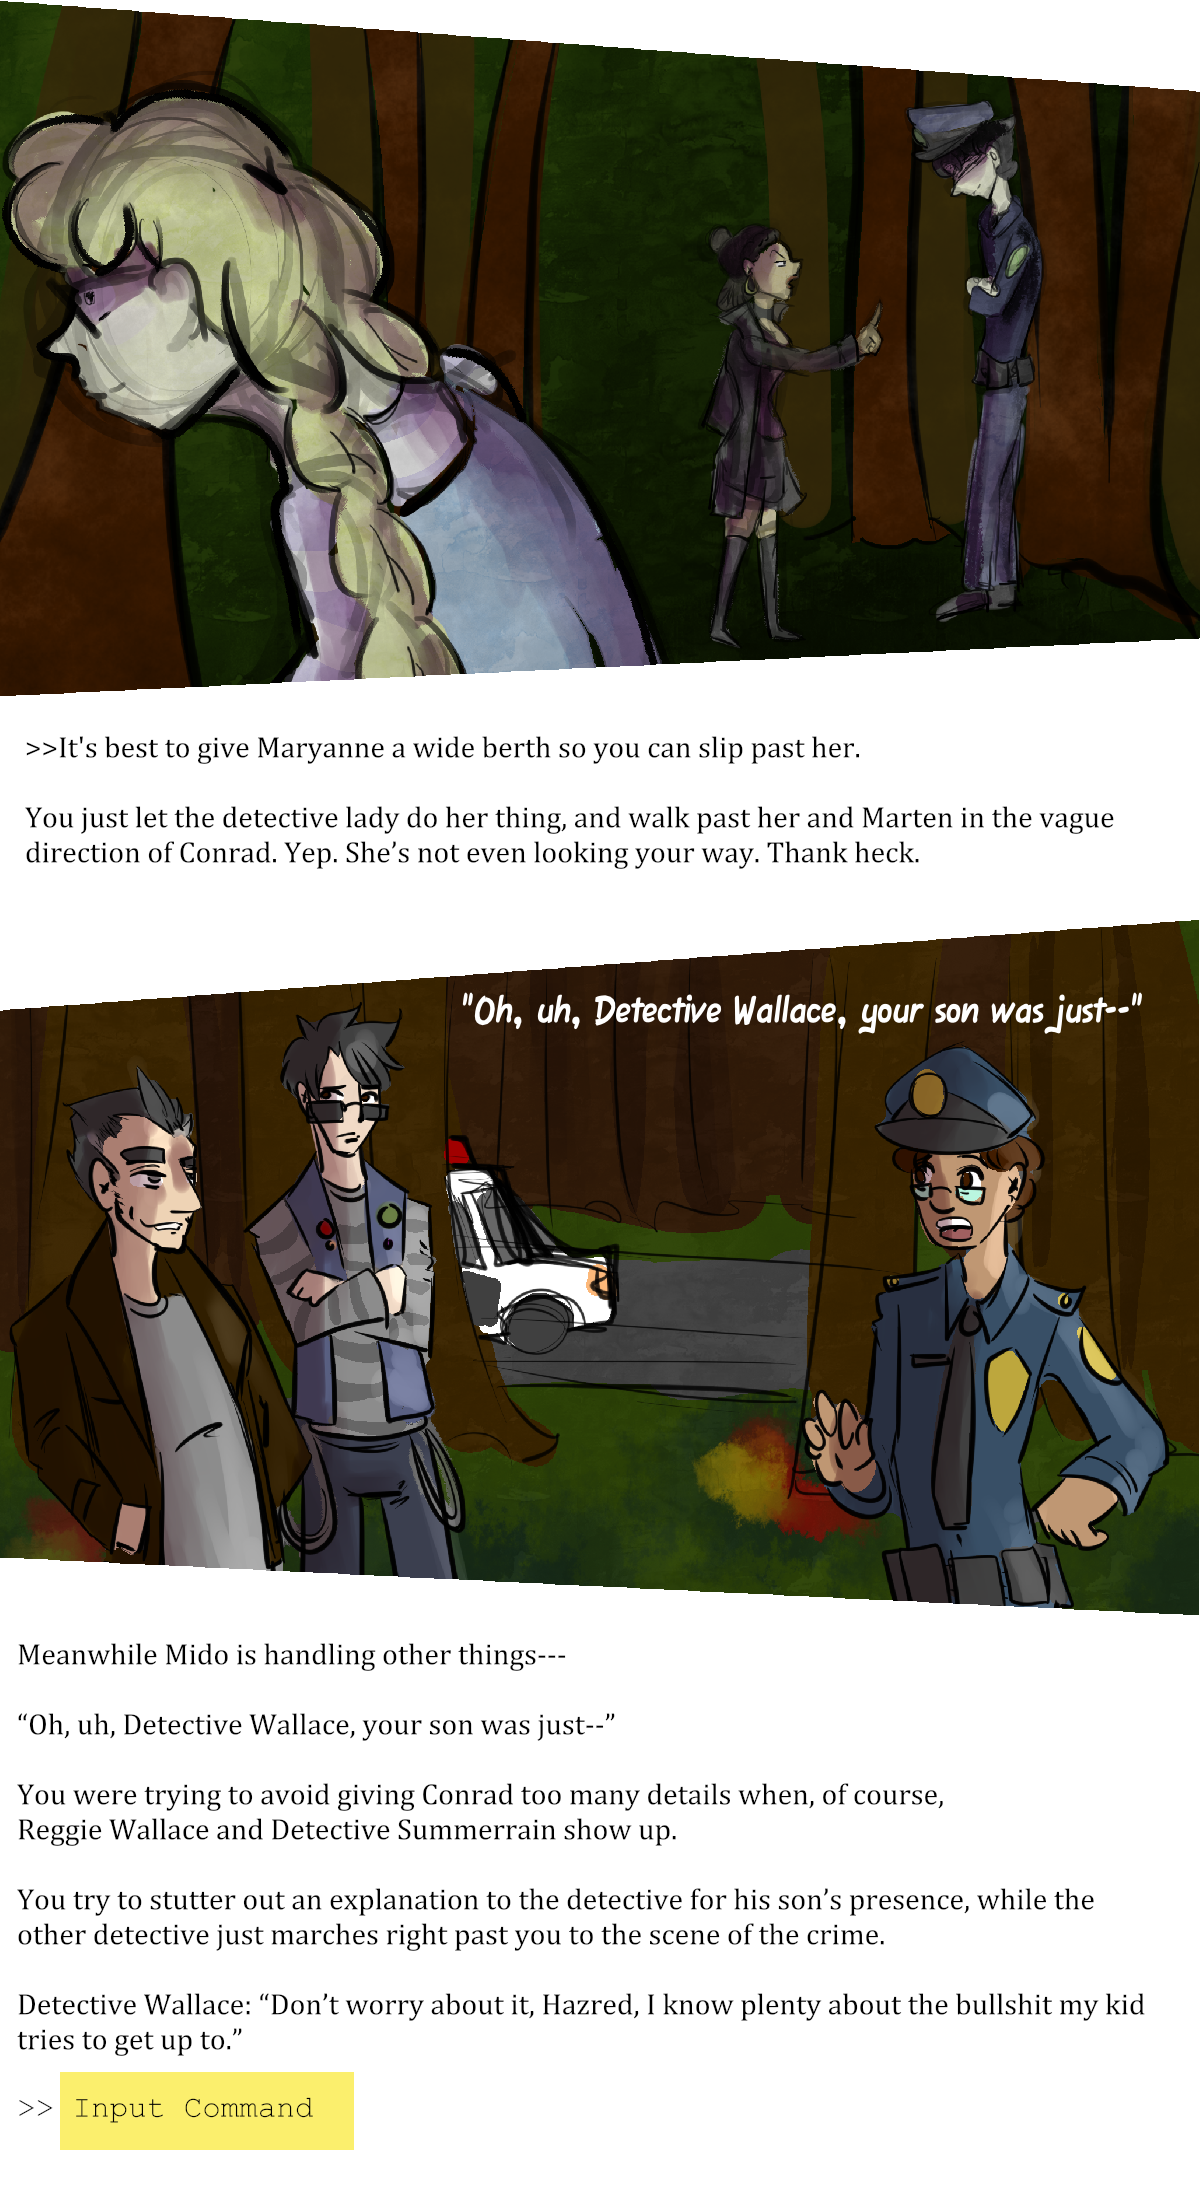 """>>It's best to give Maryanne a wide berth so you can slip past her.  You just let the detective lady do her thing, and walk past her and Marten in the vague direction of Conrad. Yep. She's not even looking your way. Thank heck.  Meanwhile Mido is handling other things---  """"Oh, uh, Detective Wallace, your son was just--""""  You were trying to avoid giving Conrad too many details when, of course, Reggie Wllace and Detective Summerrain show up.   You try to stutter out an explanation to the detective for his son's presence, while the other detective just marches right past you to the scene of the crime.  Detective Wallace: """"Don't worry about it, Hazred, I know plenty about the bullshit my kid tries to get up to.""""  >> Input Command"""